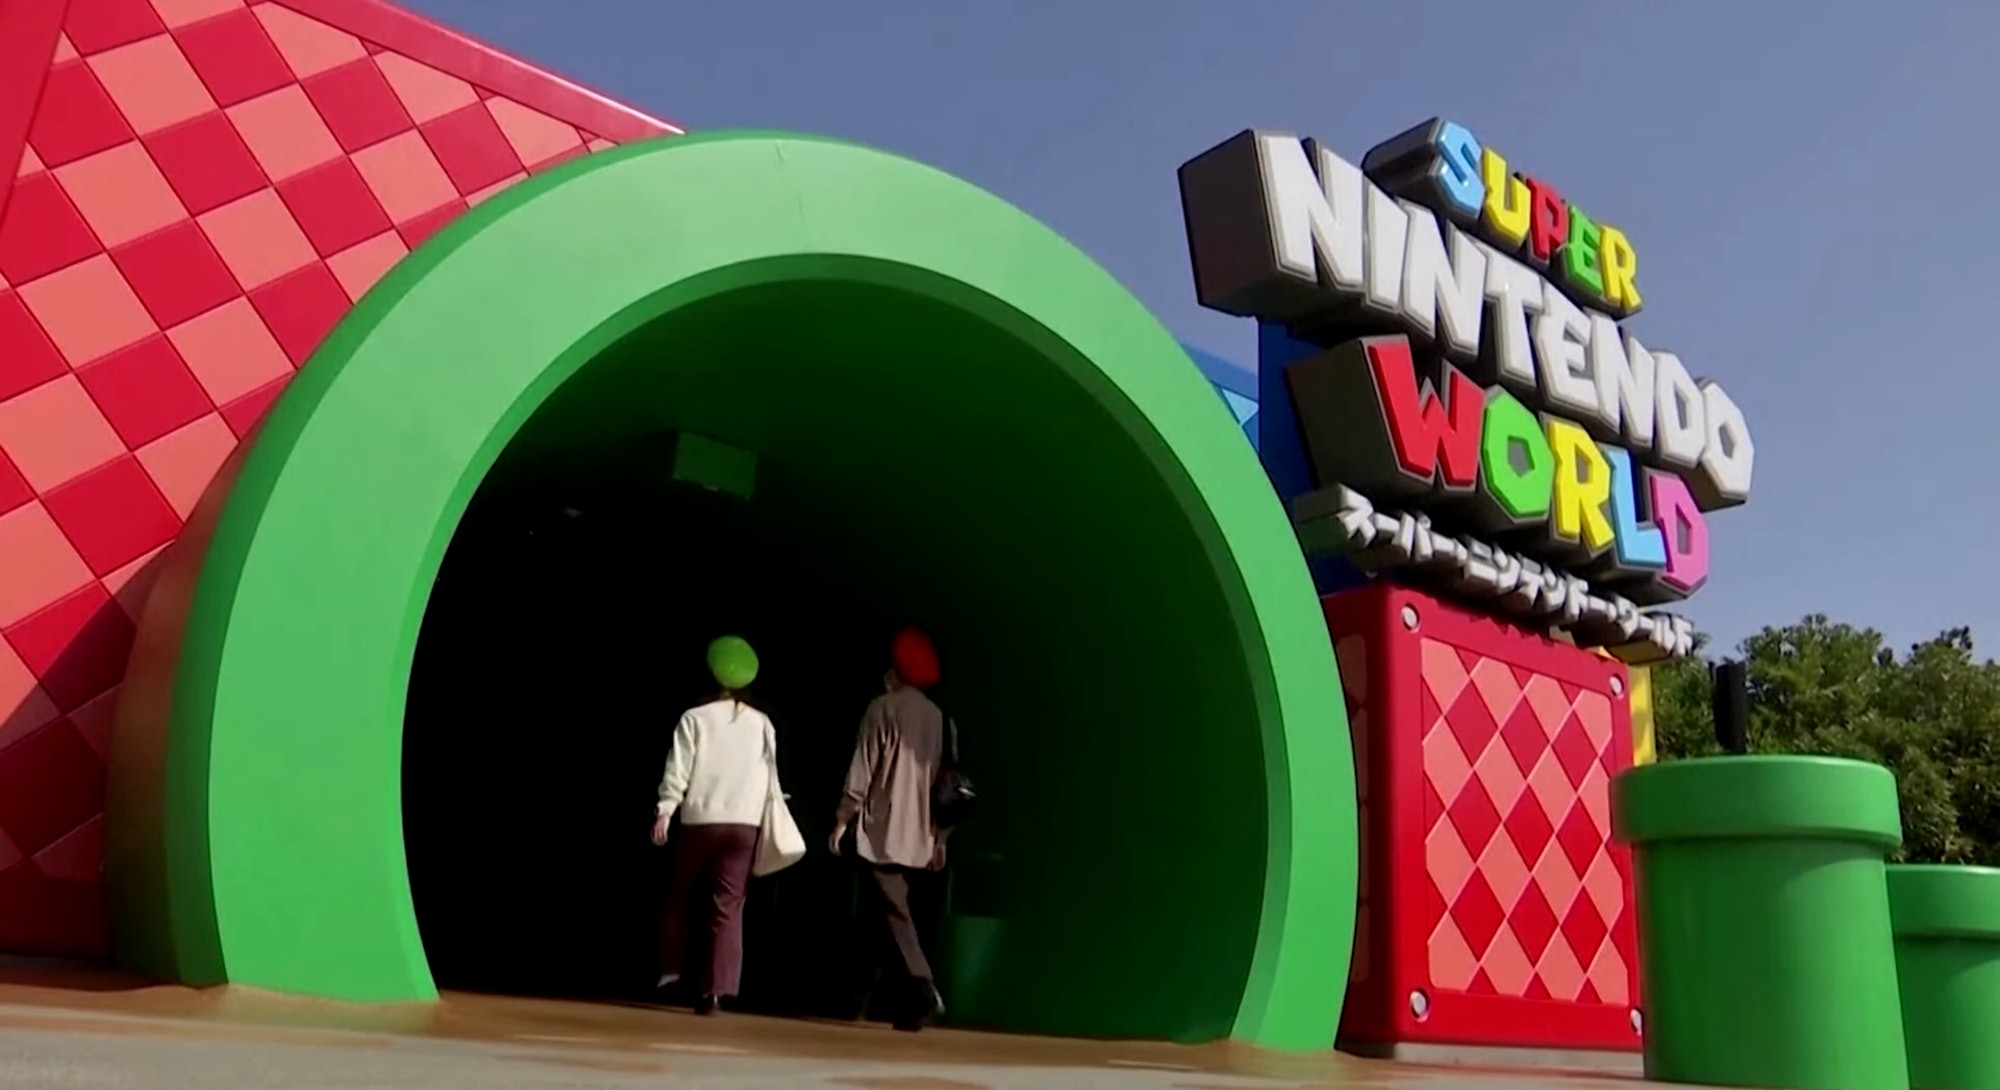 Two people enter a warp pipe